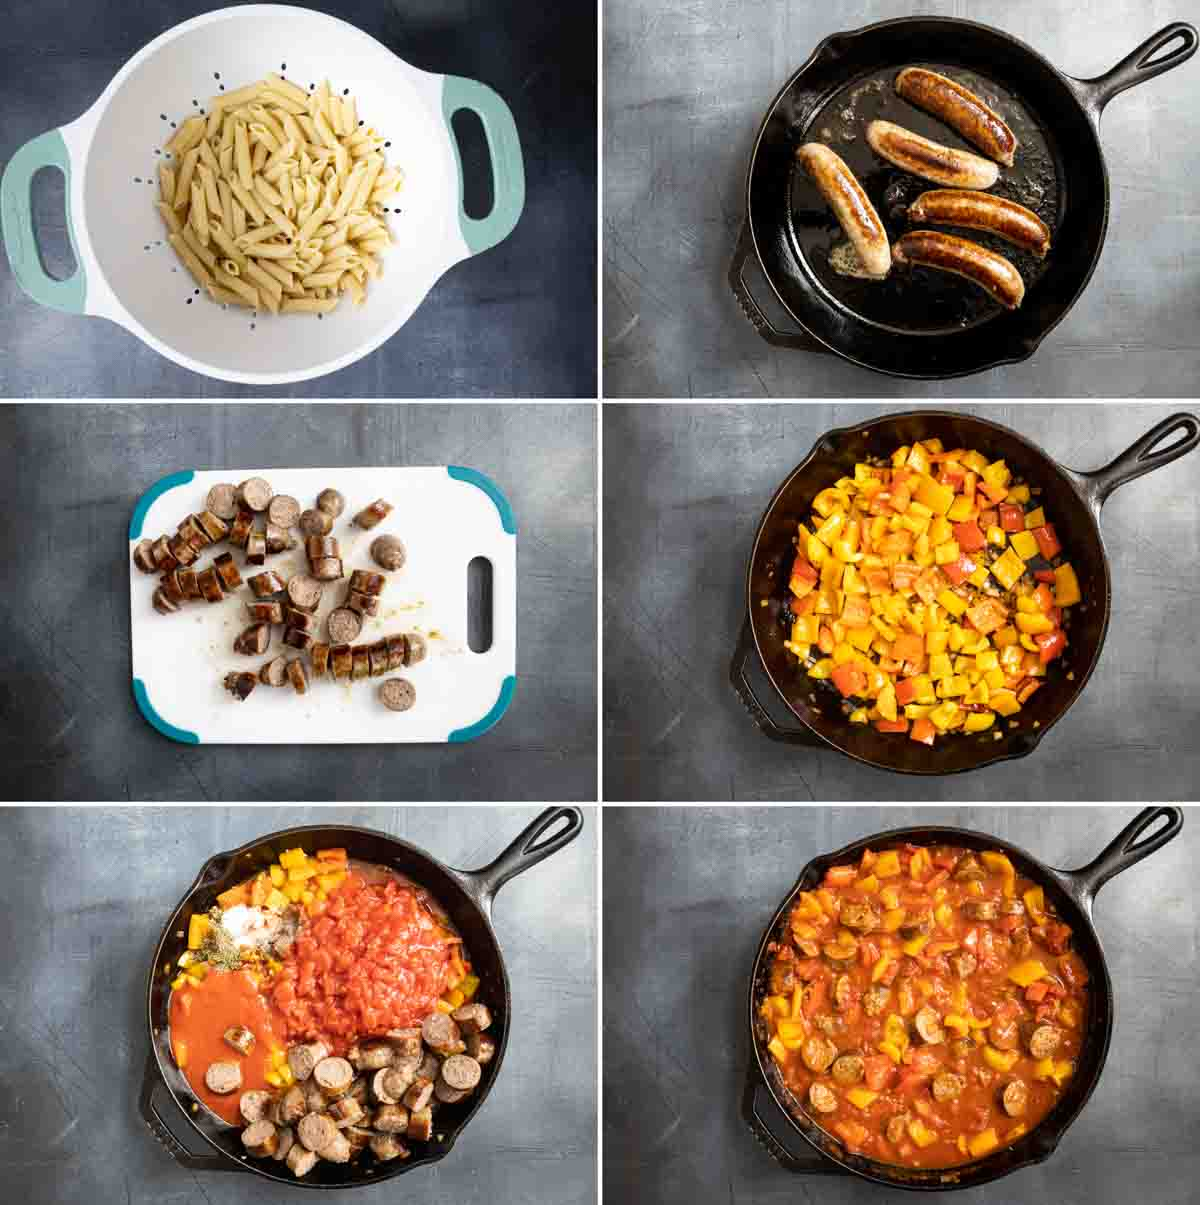 steps to make sausage and peppers pasta